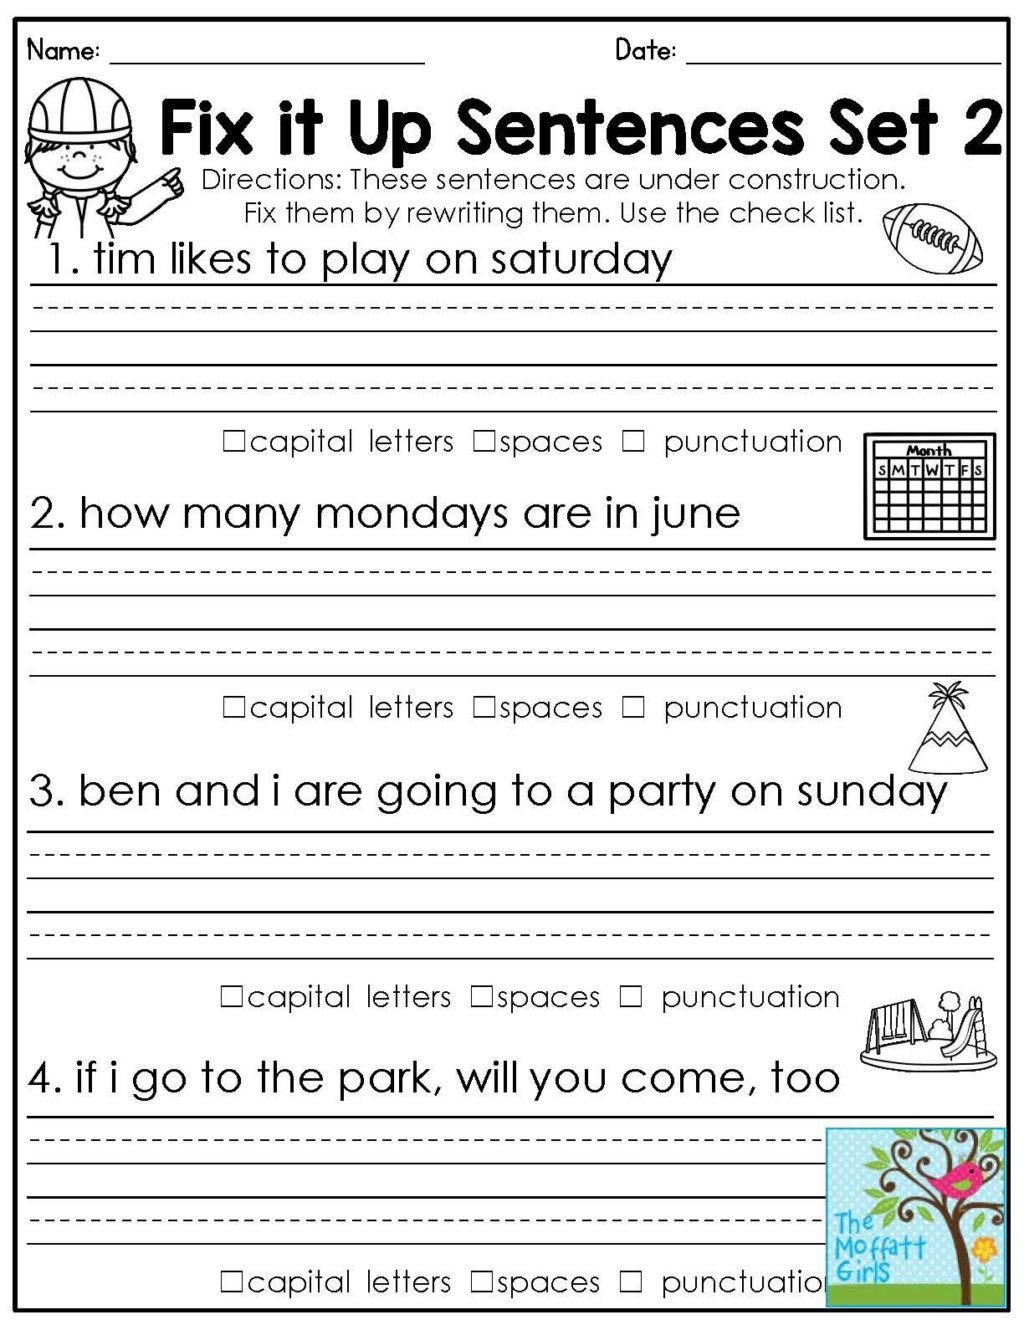 mastering grammar and language arts 2nd grade worksheets first 2